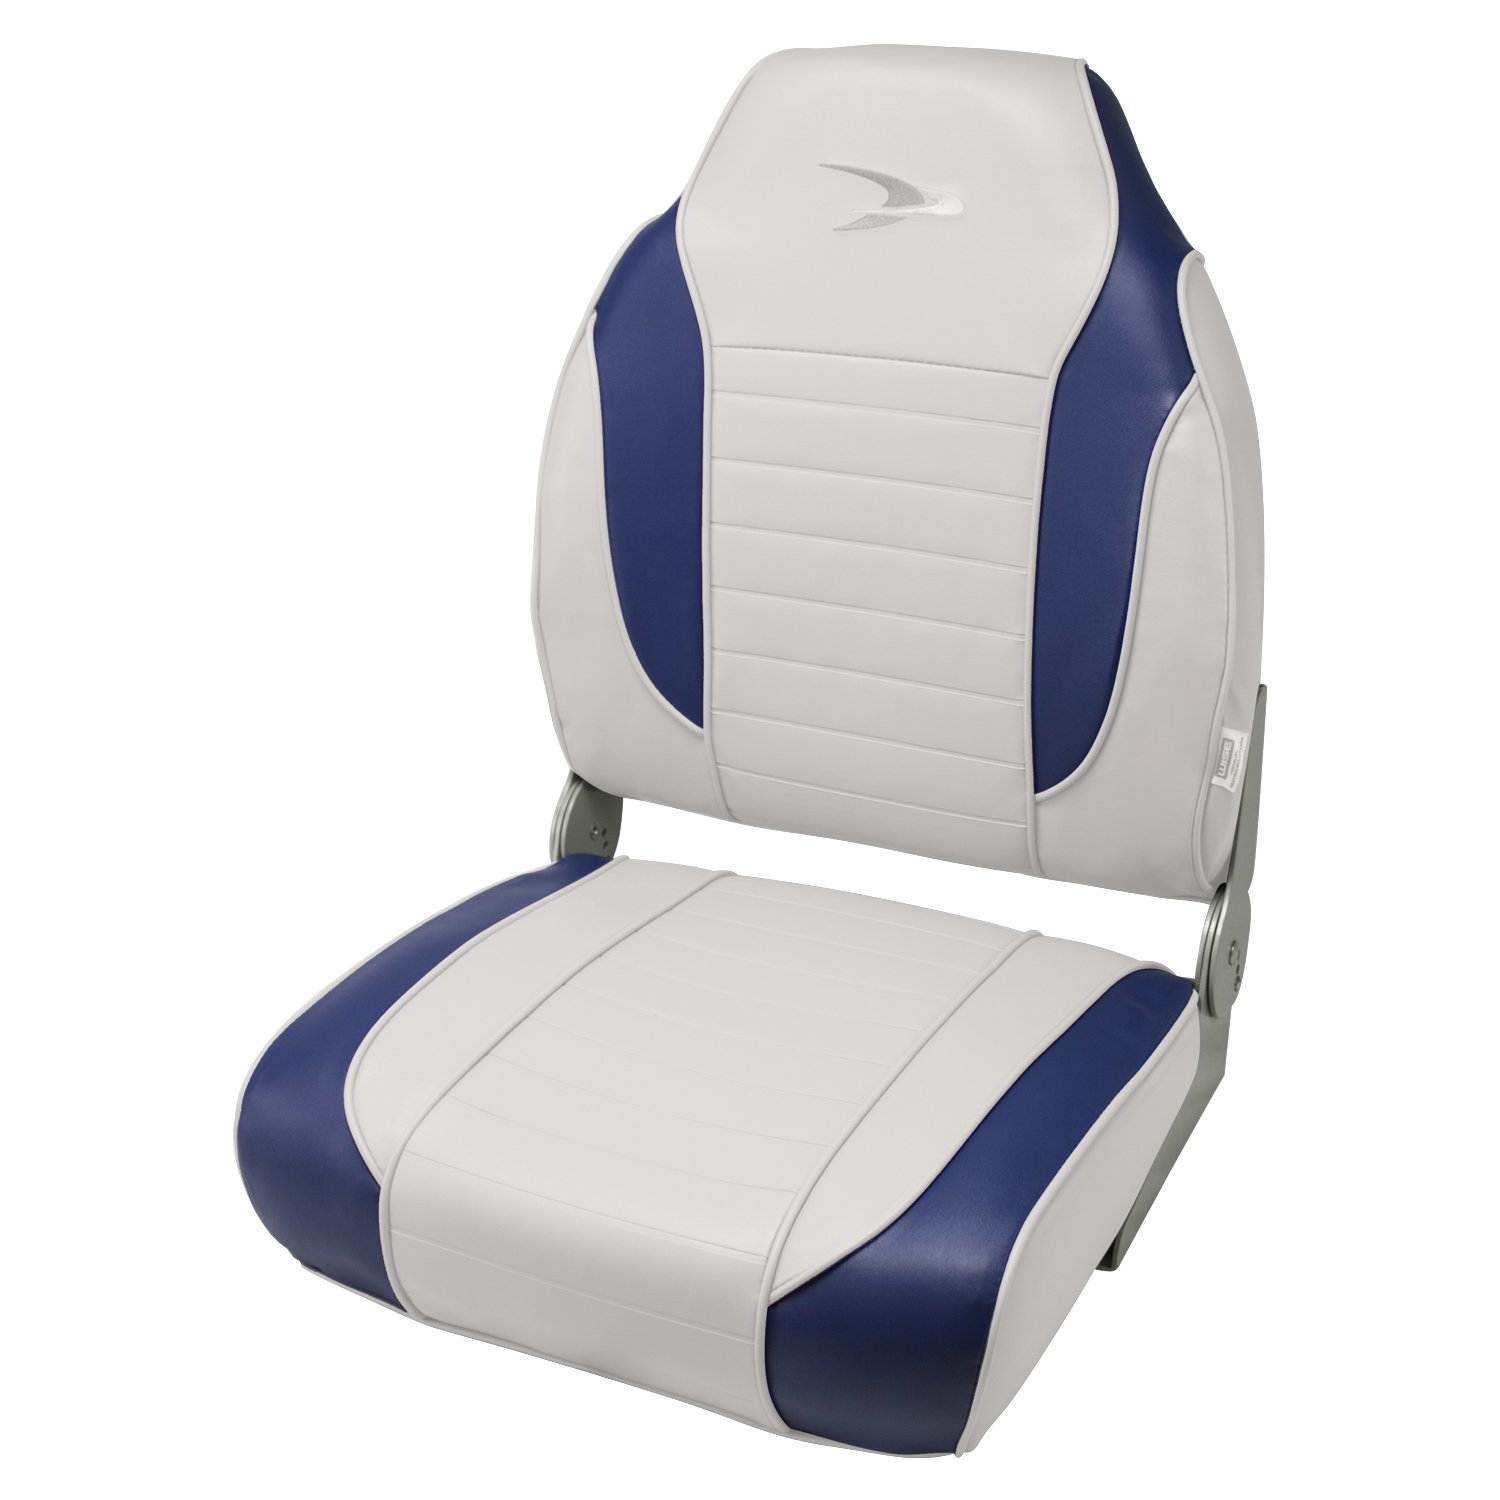 Wise 8WD892 Series Striped High Back Boat Seat Brite White-Midnite The Wise Company 8WD892PLS-1713